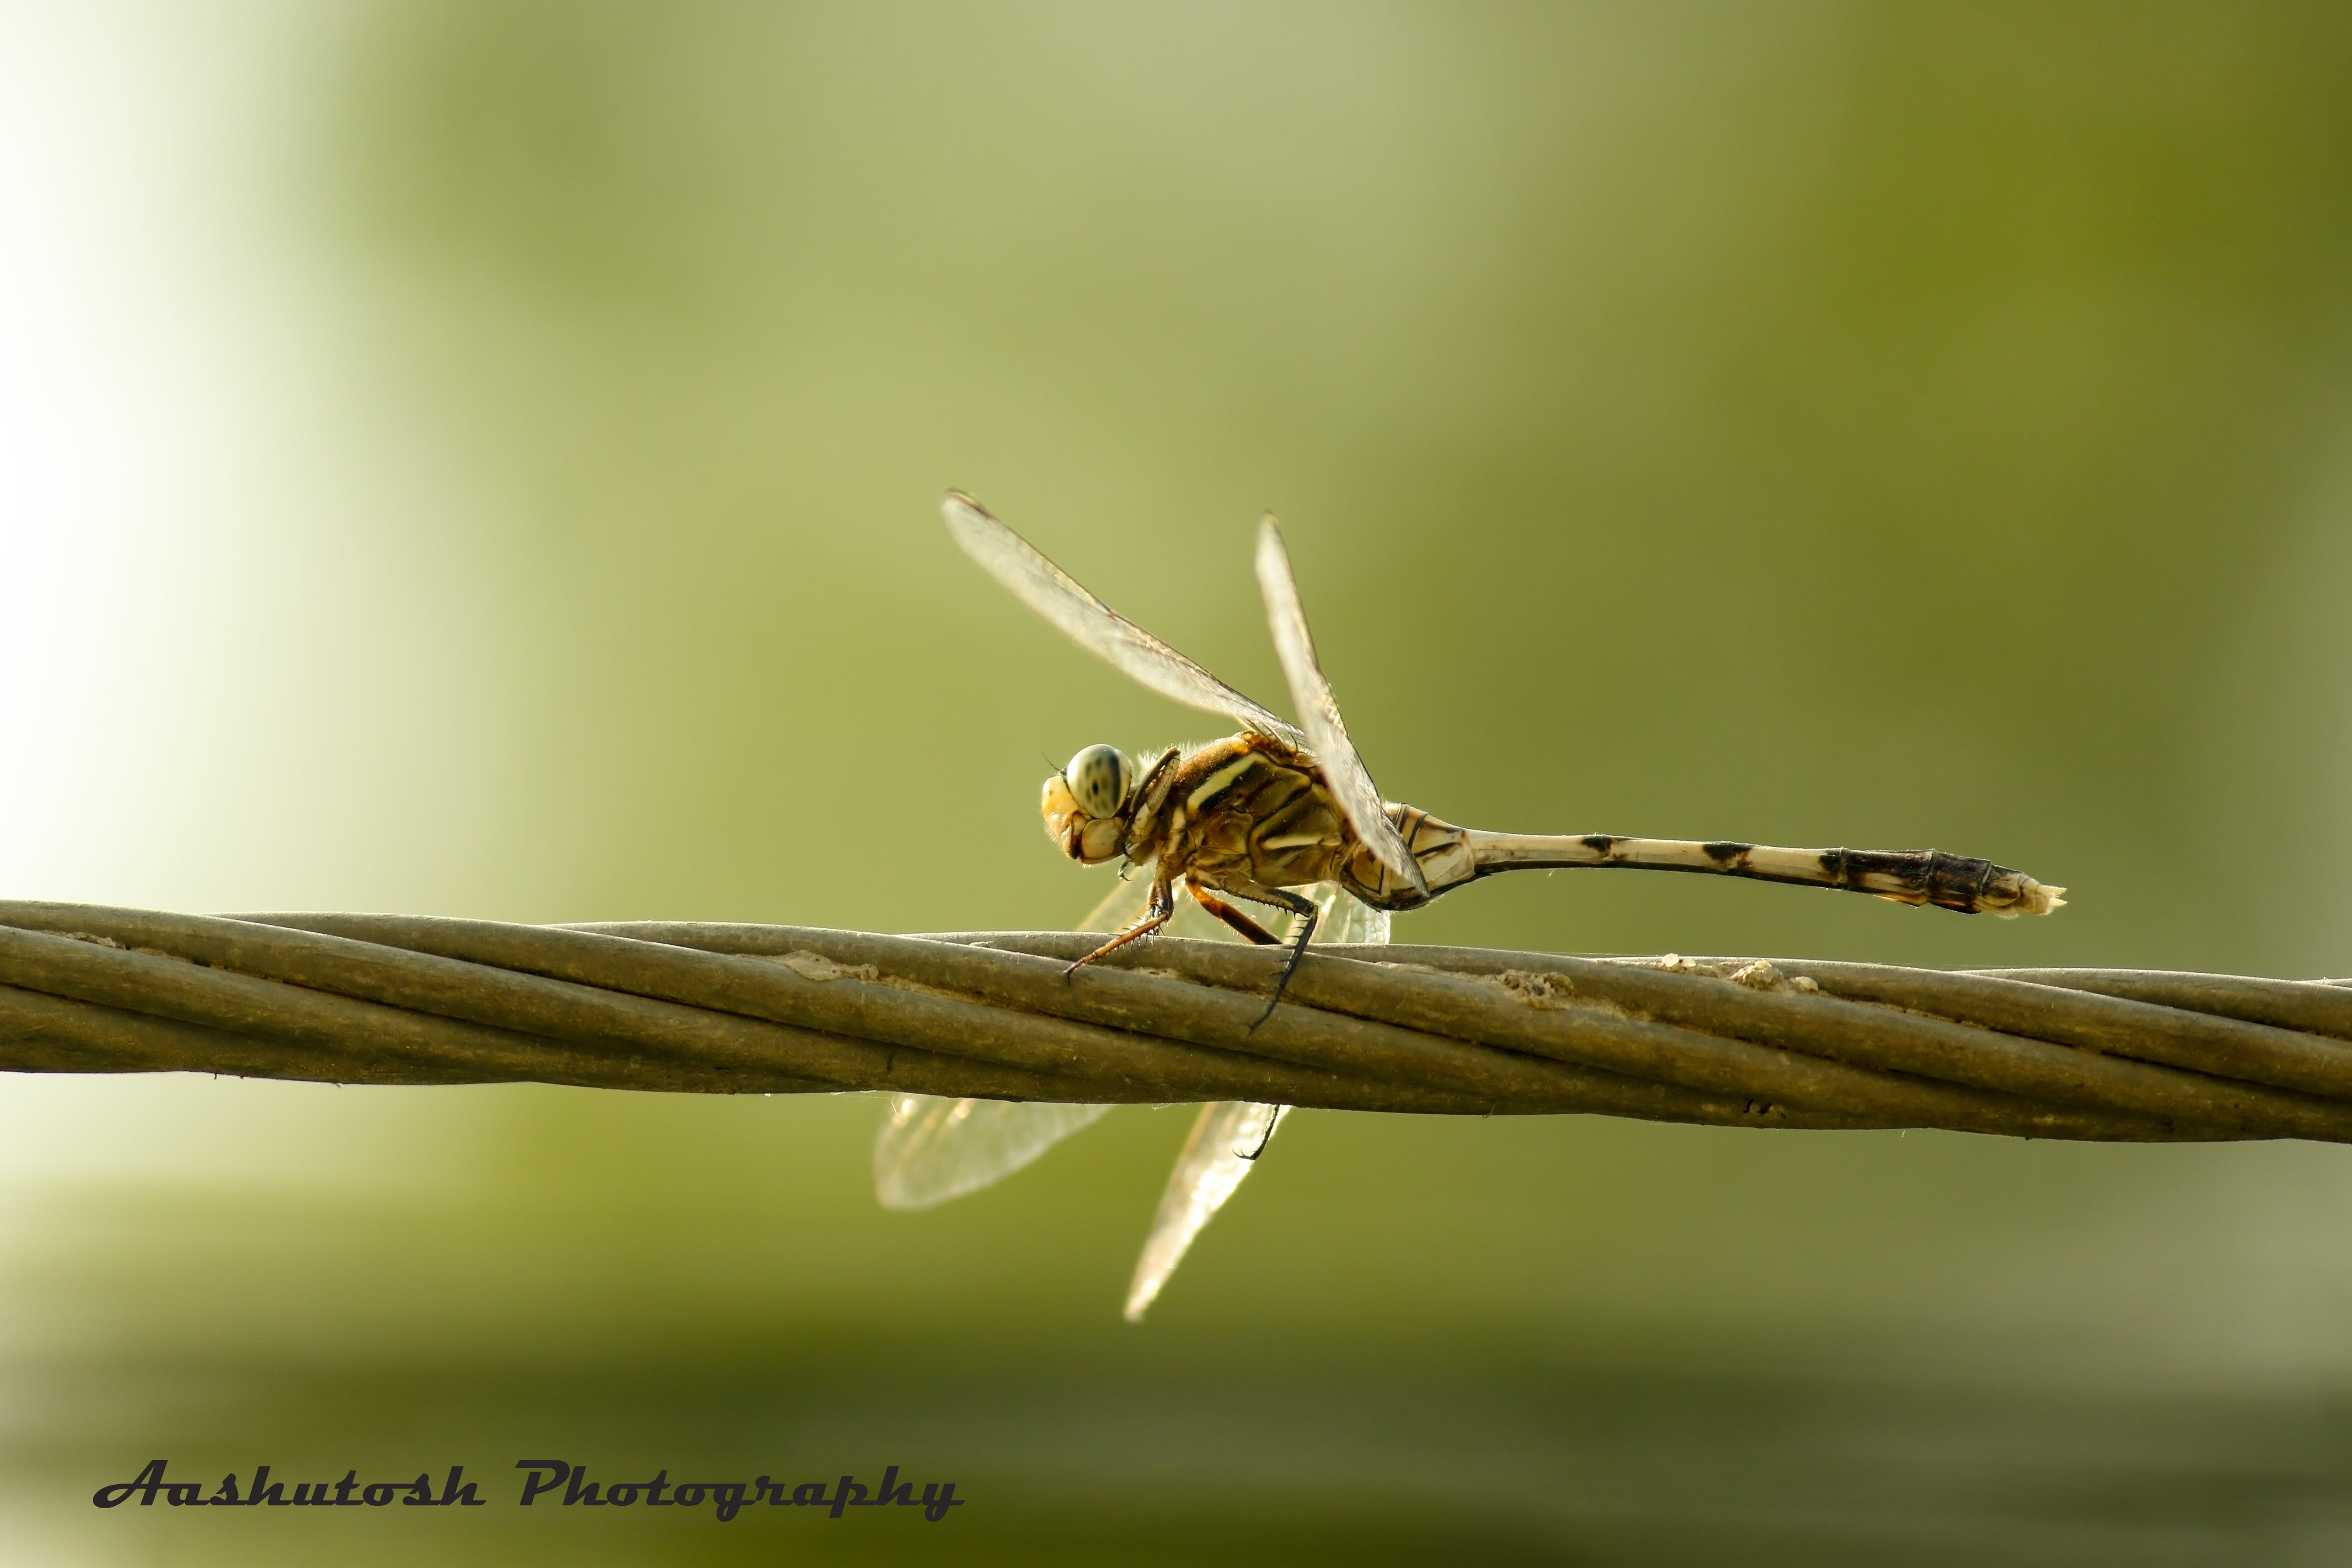 Gratis stockfoto met #natura #przyroda #king_insects #ig_insects #insec